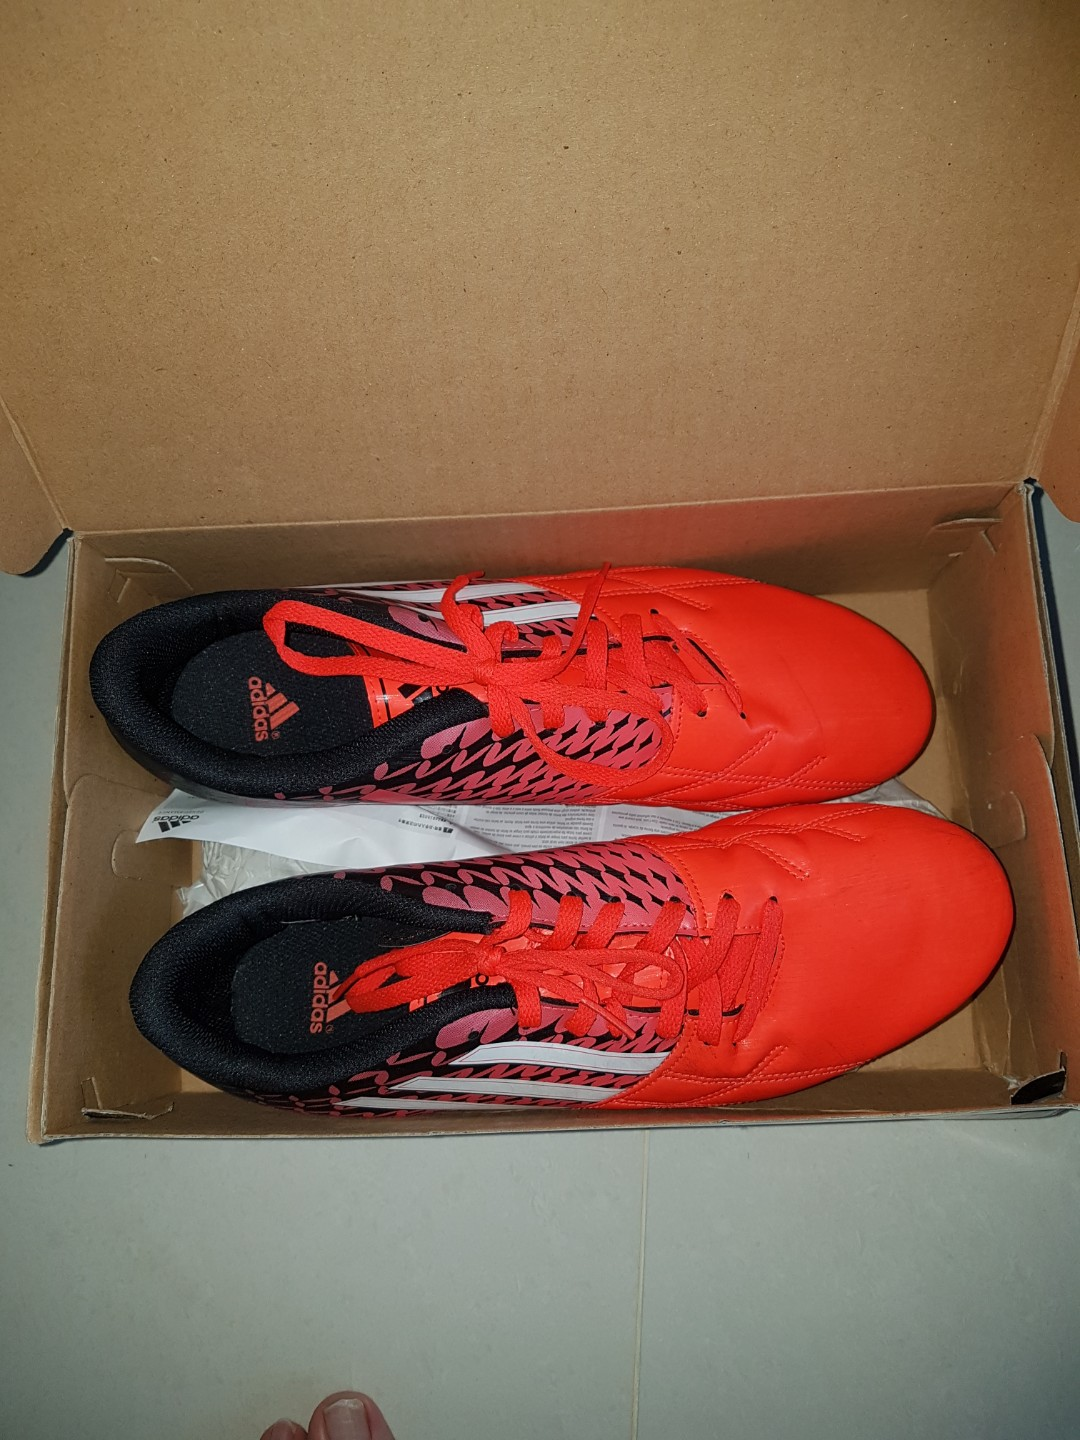 9353dc4427c Adidas soccer cleats boots